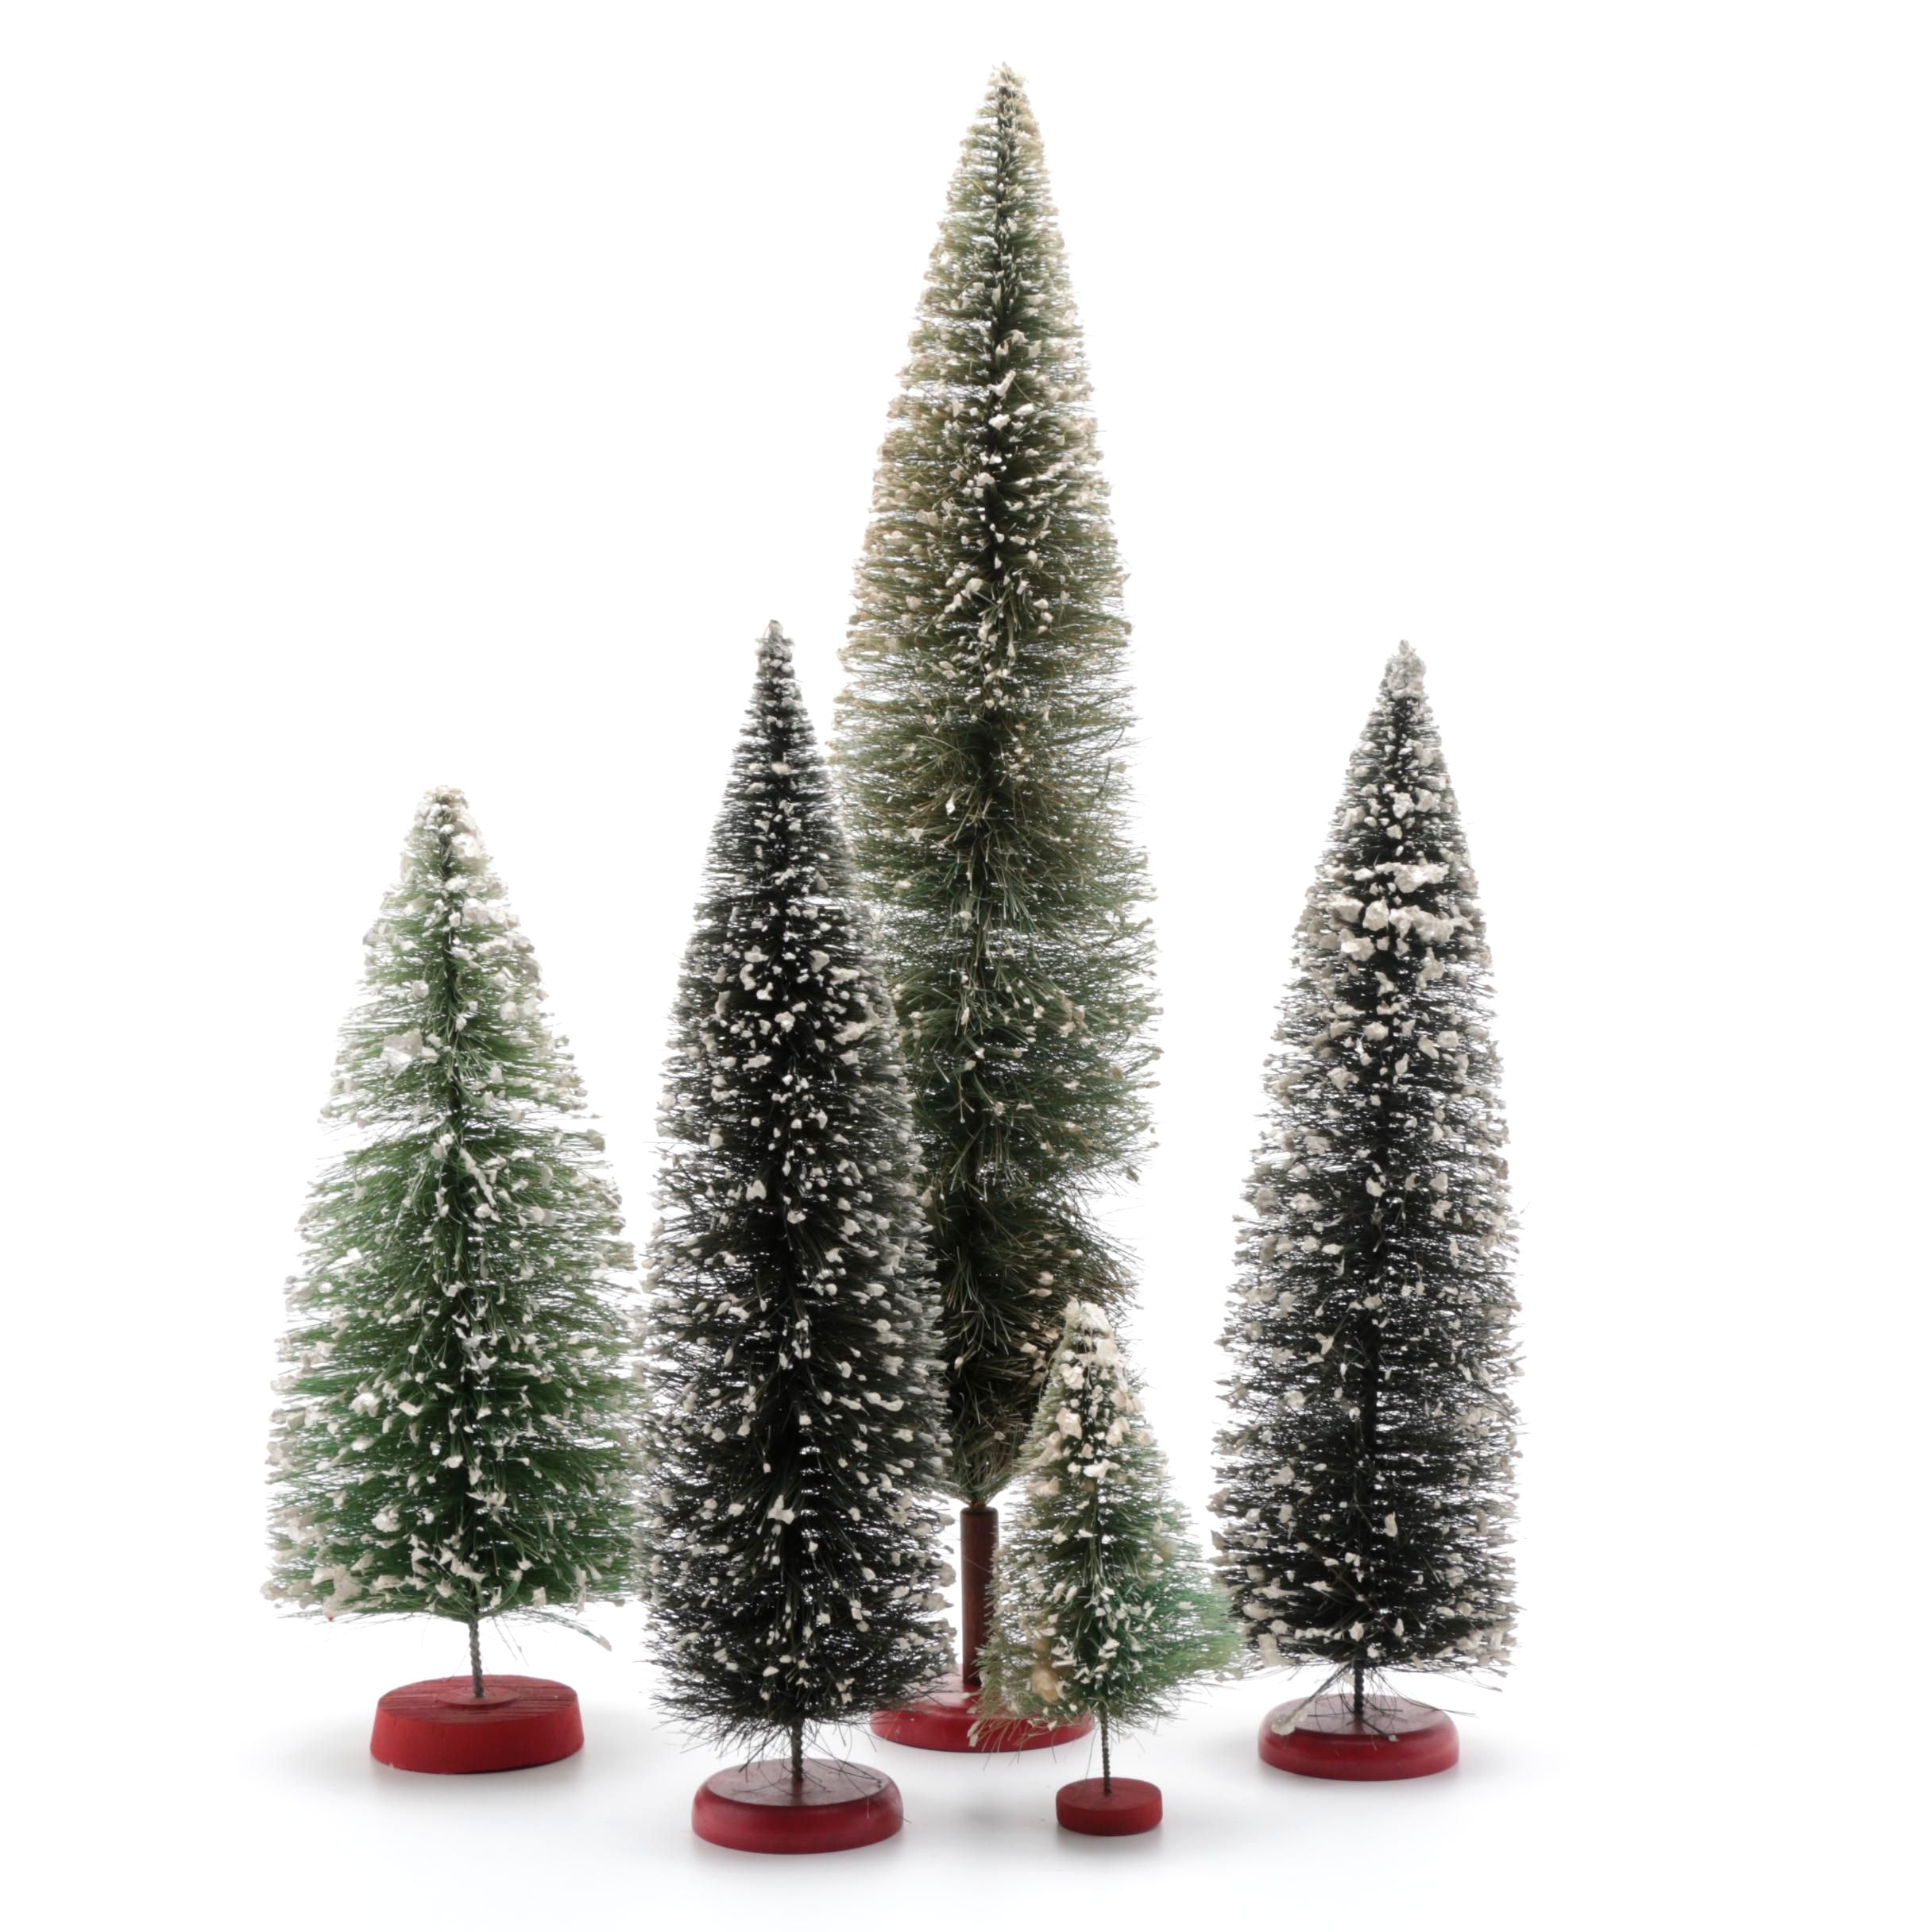 Five Vintage Bottle Brush Trees with Glittery Flocked Snow